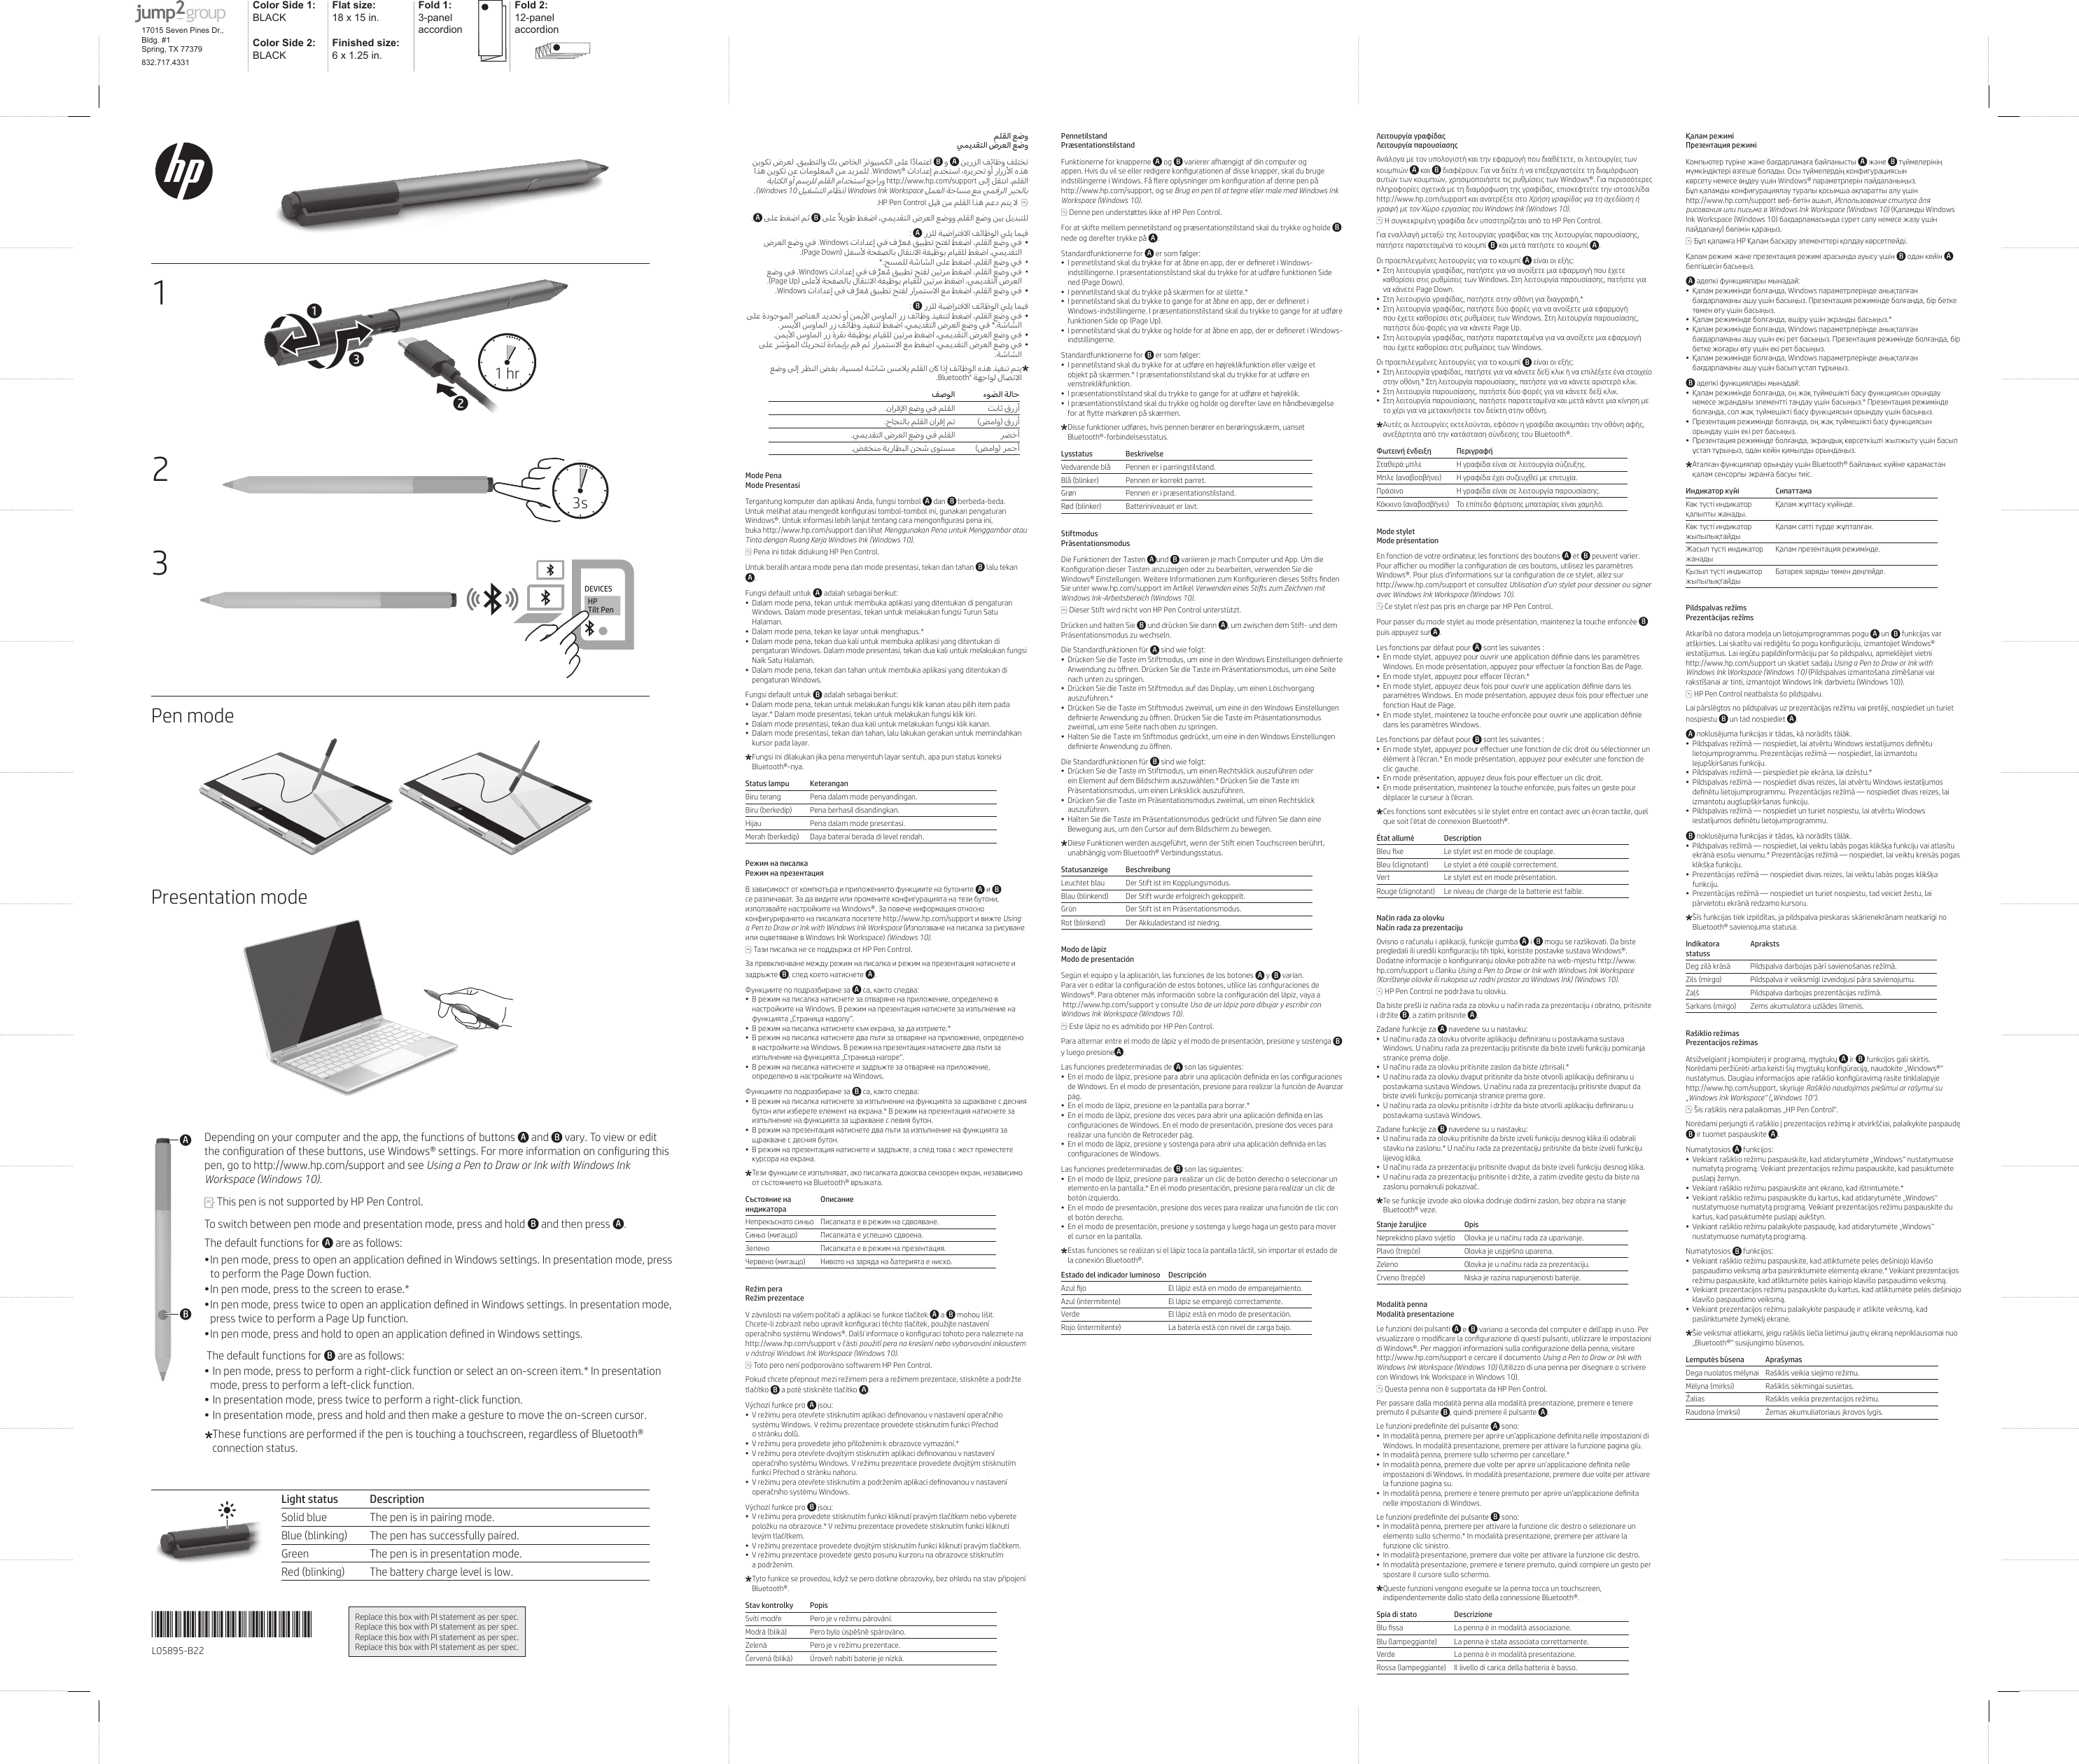 Sunwoda Electronic SPEN-HP-03 Active stylus User Manual